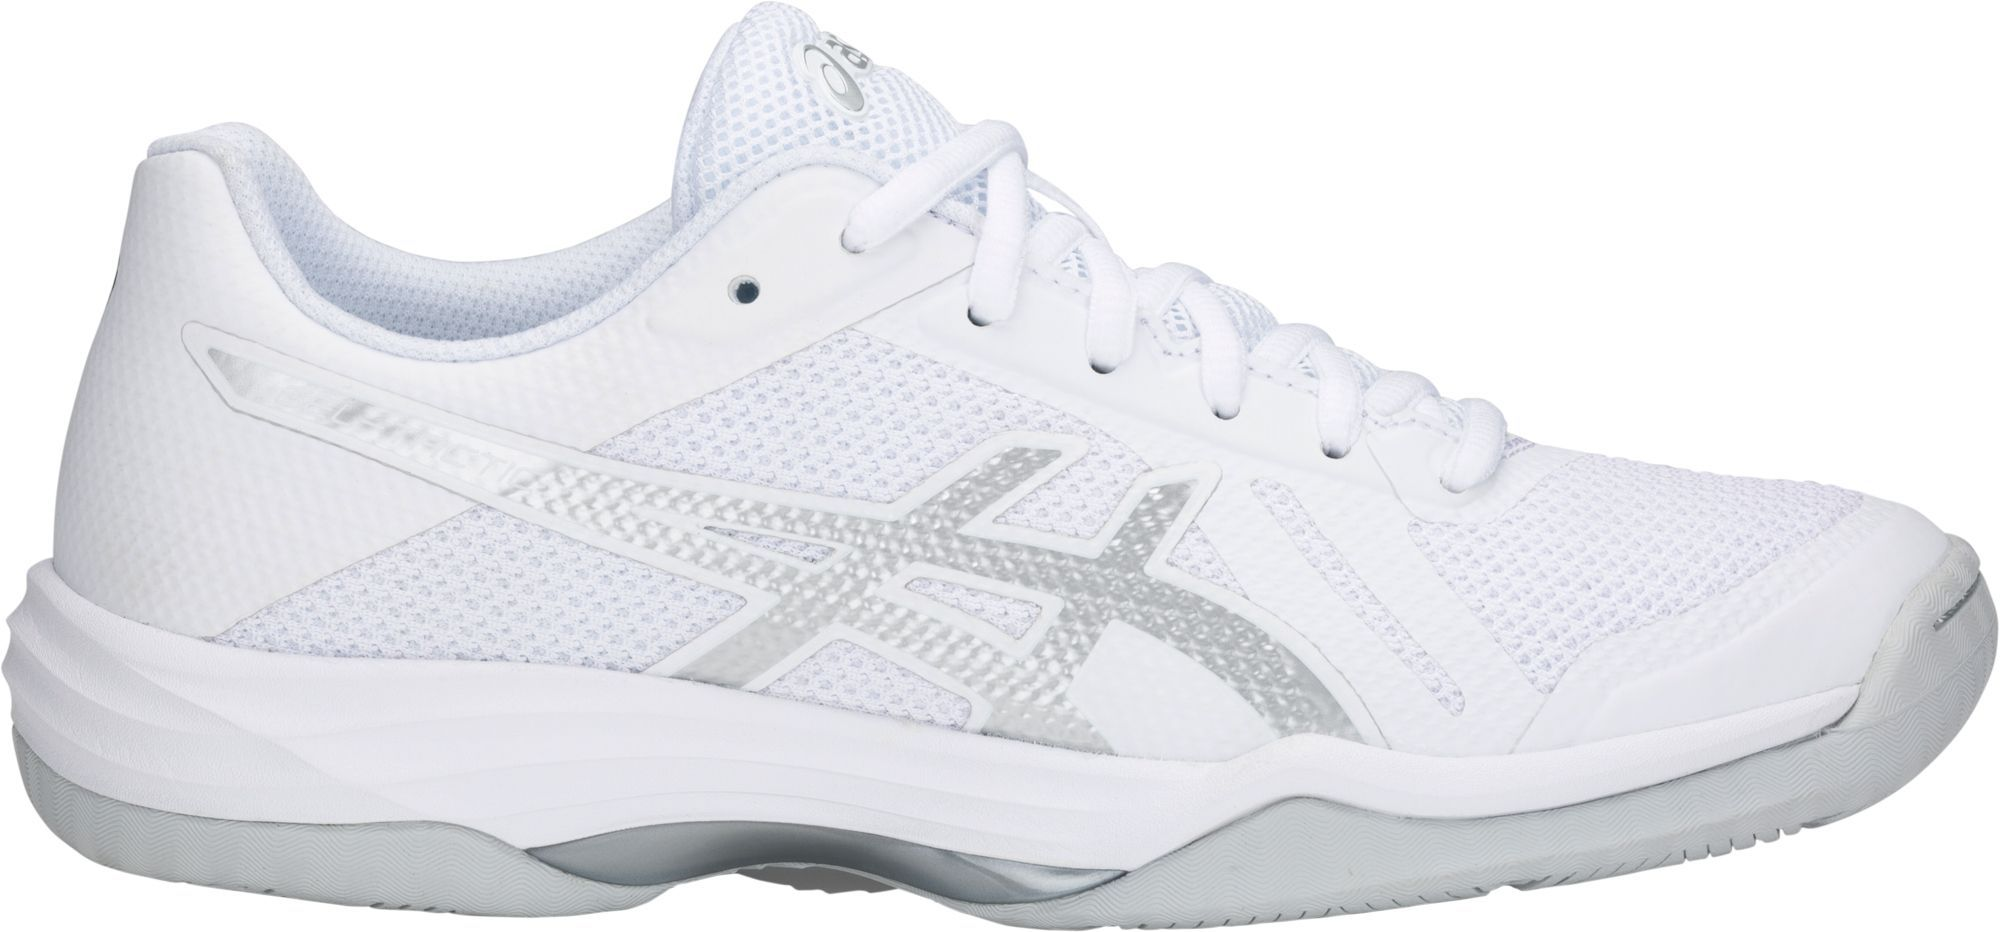 Asics Women S Gel Tactic 2 Volleyball Shoes White Asics Volleyball Shoes Volleyball Shoes Asics Women